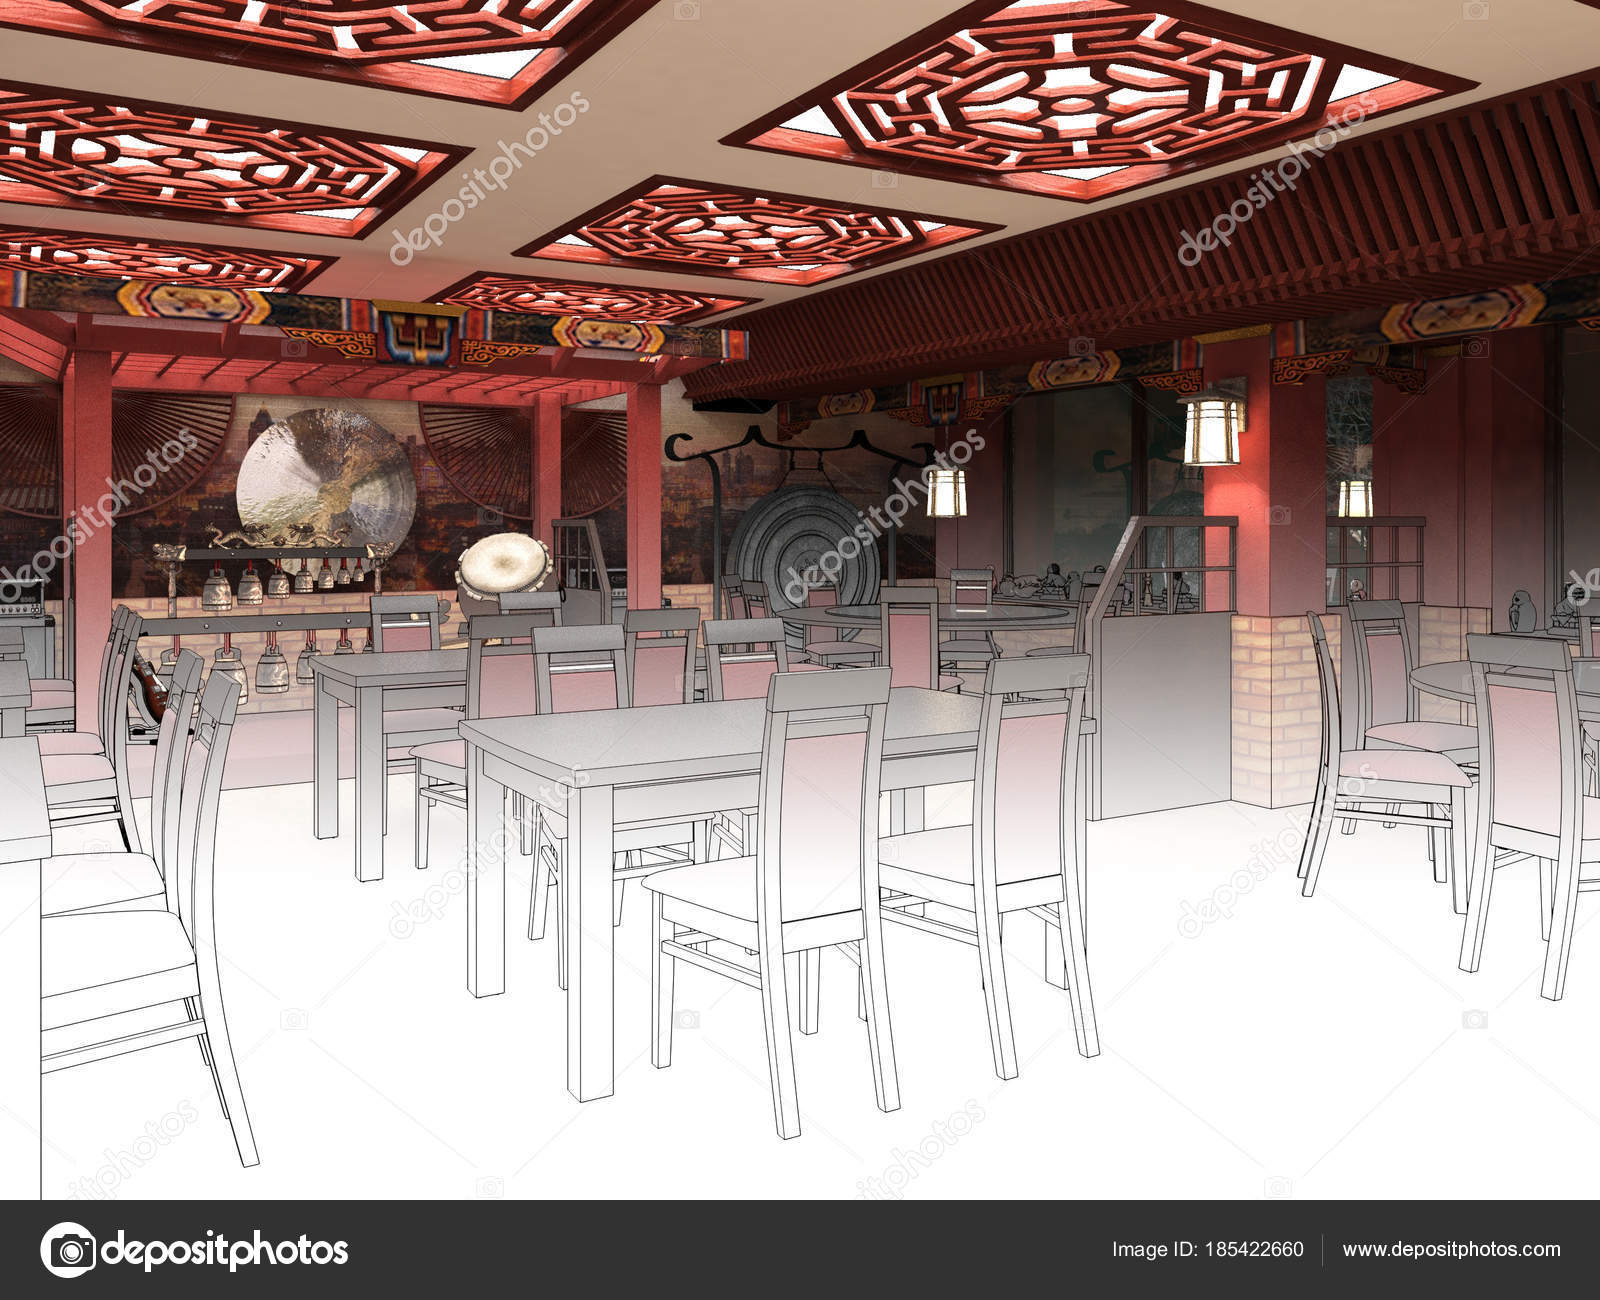 Chinese Restaurant Design Render Black And White Sketch Of The Chinese Restaurant Interior Design Stock Photo C Wassiliy 185422660